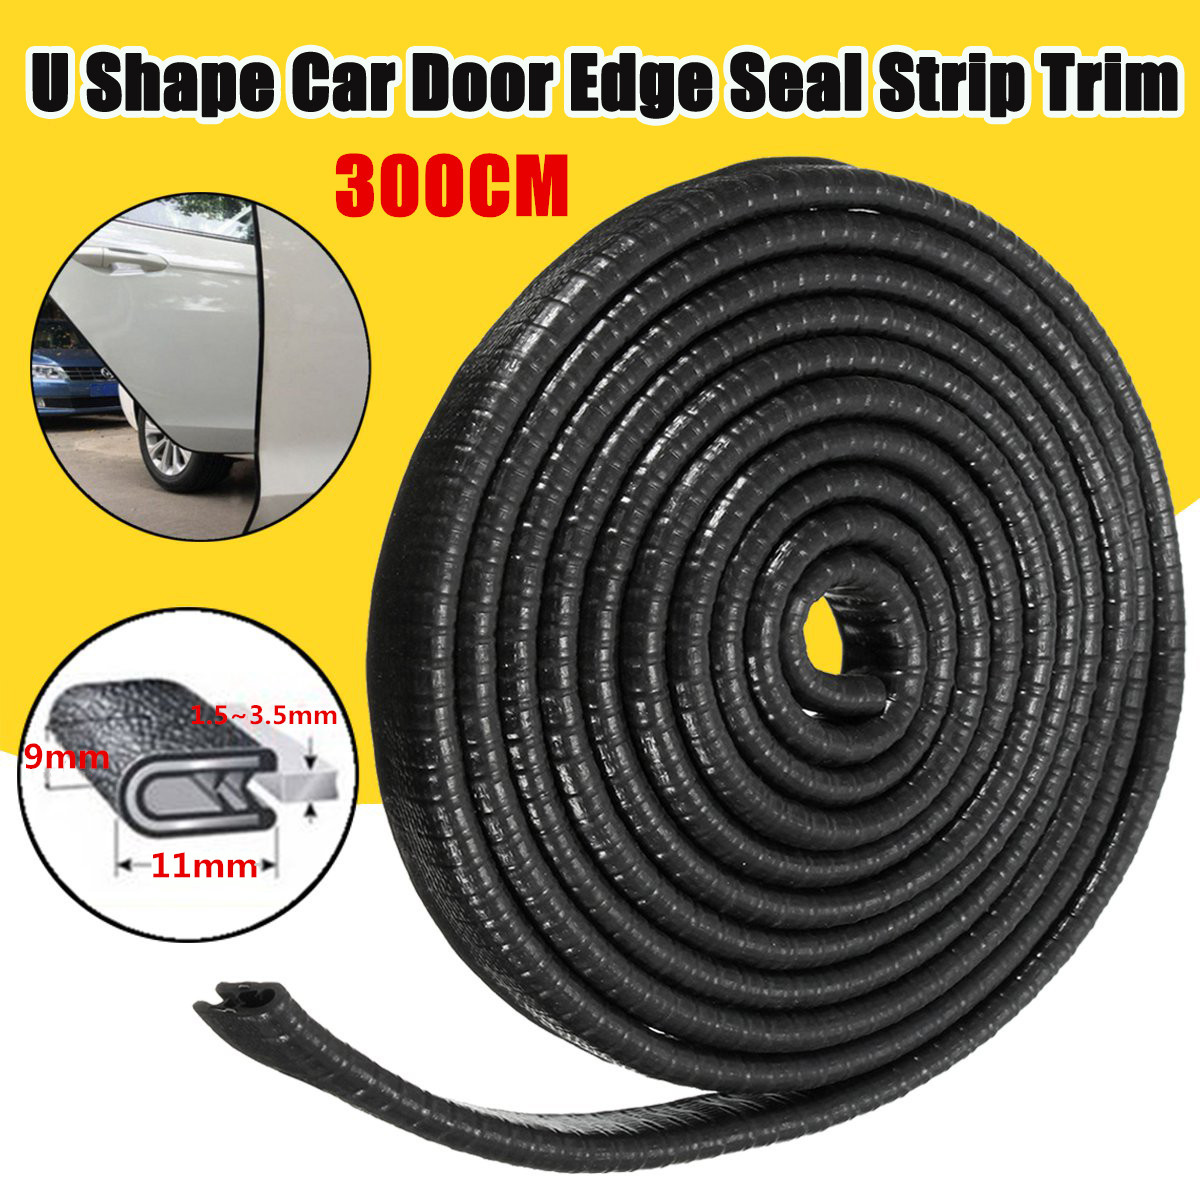 Autoleader 300cm U Shape Car Door Side Weather Seal Strip Sealing Guard Mold Trim Universal 10ft Rubber Sealant For 1.5-3.5mm